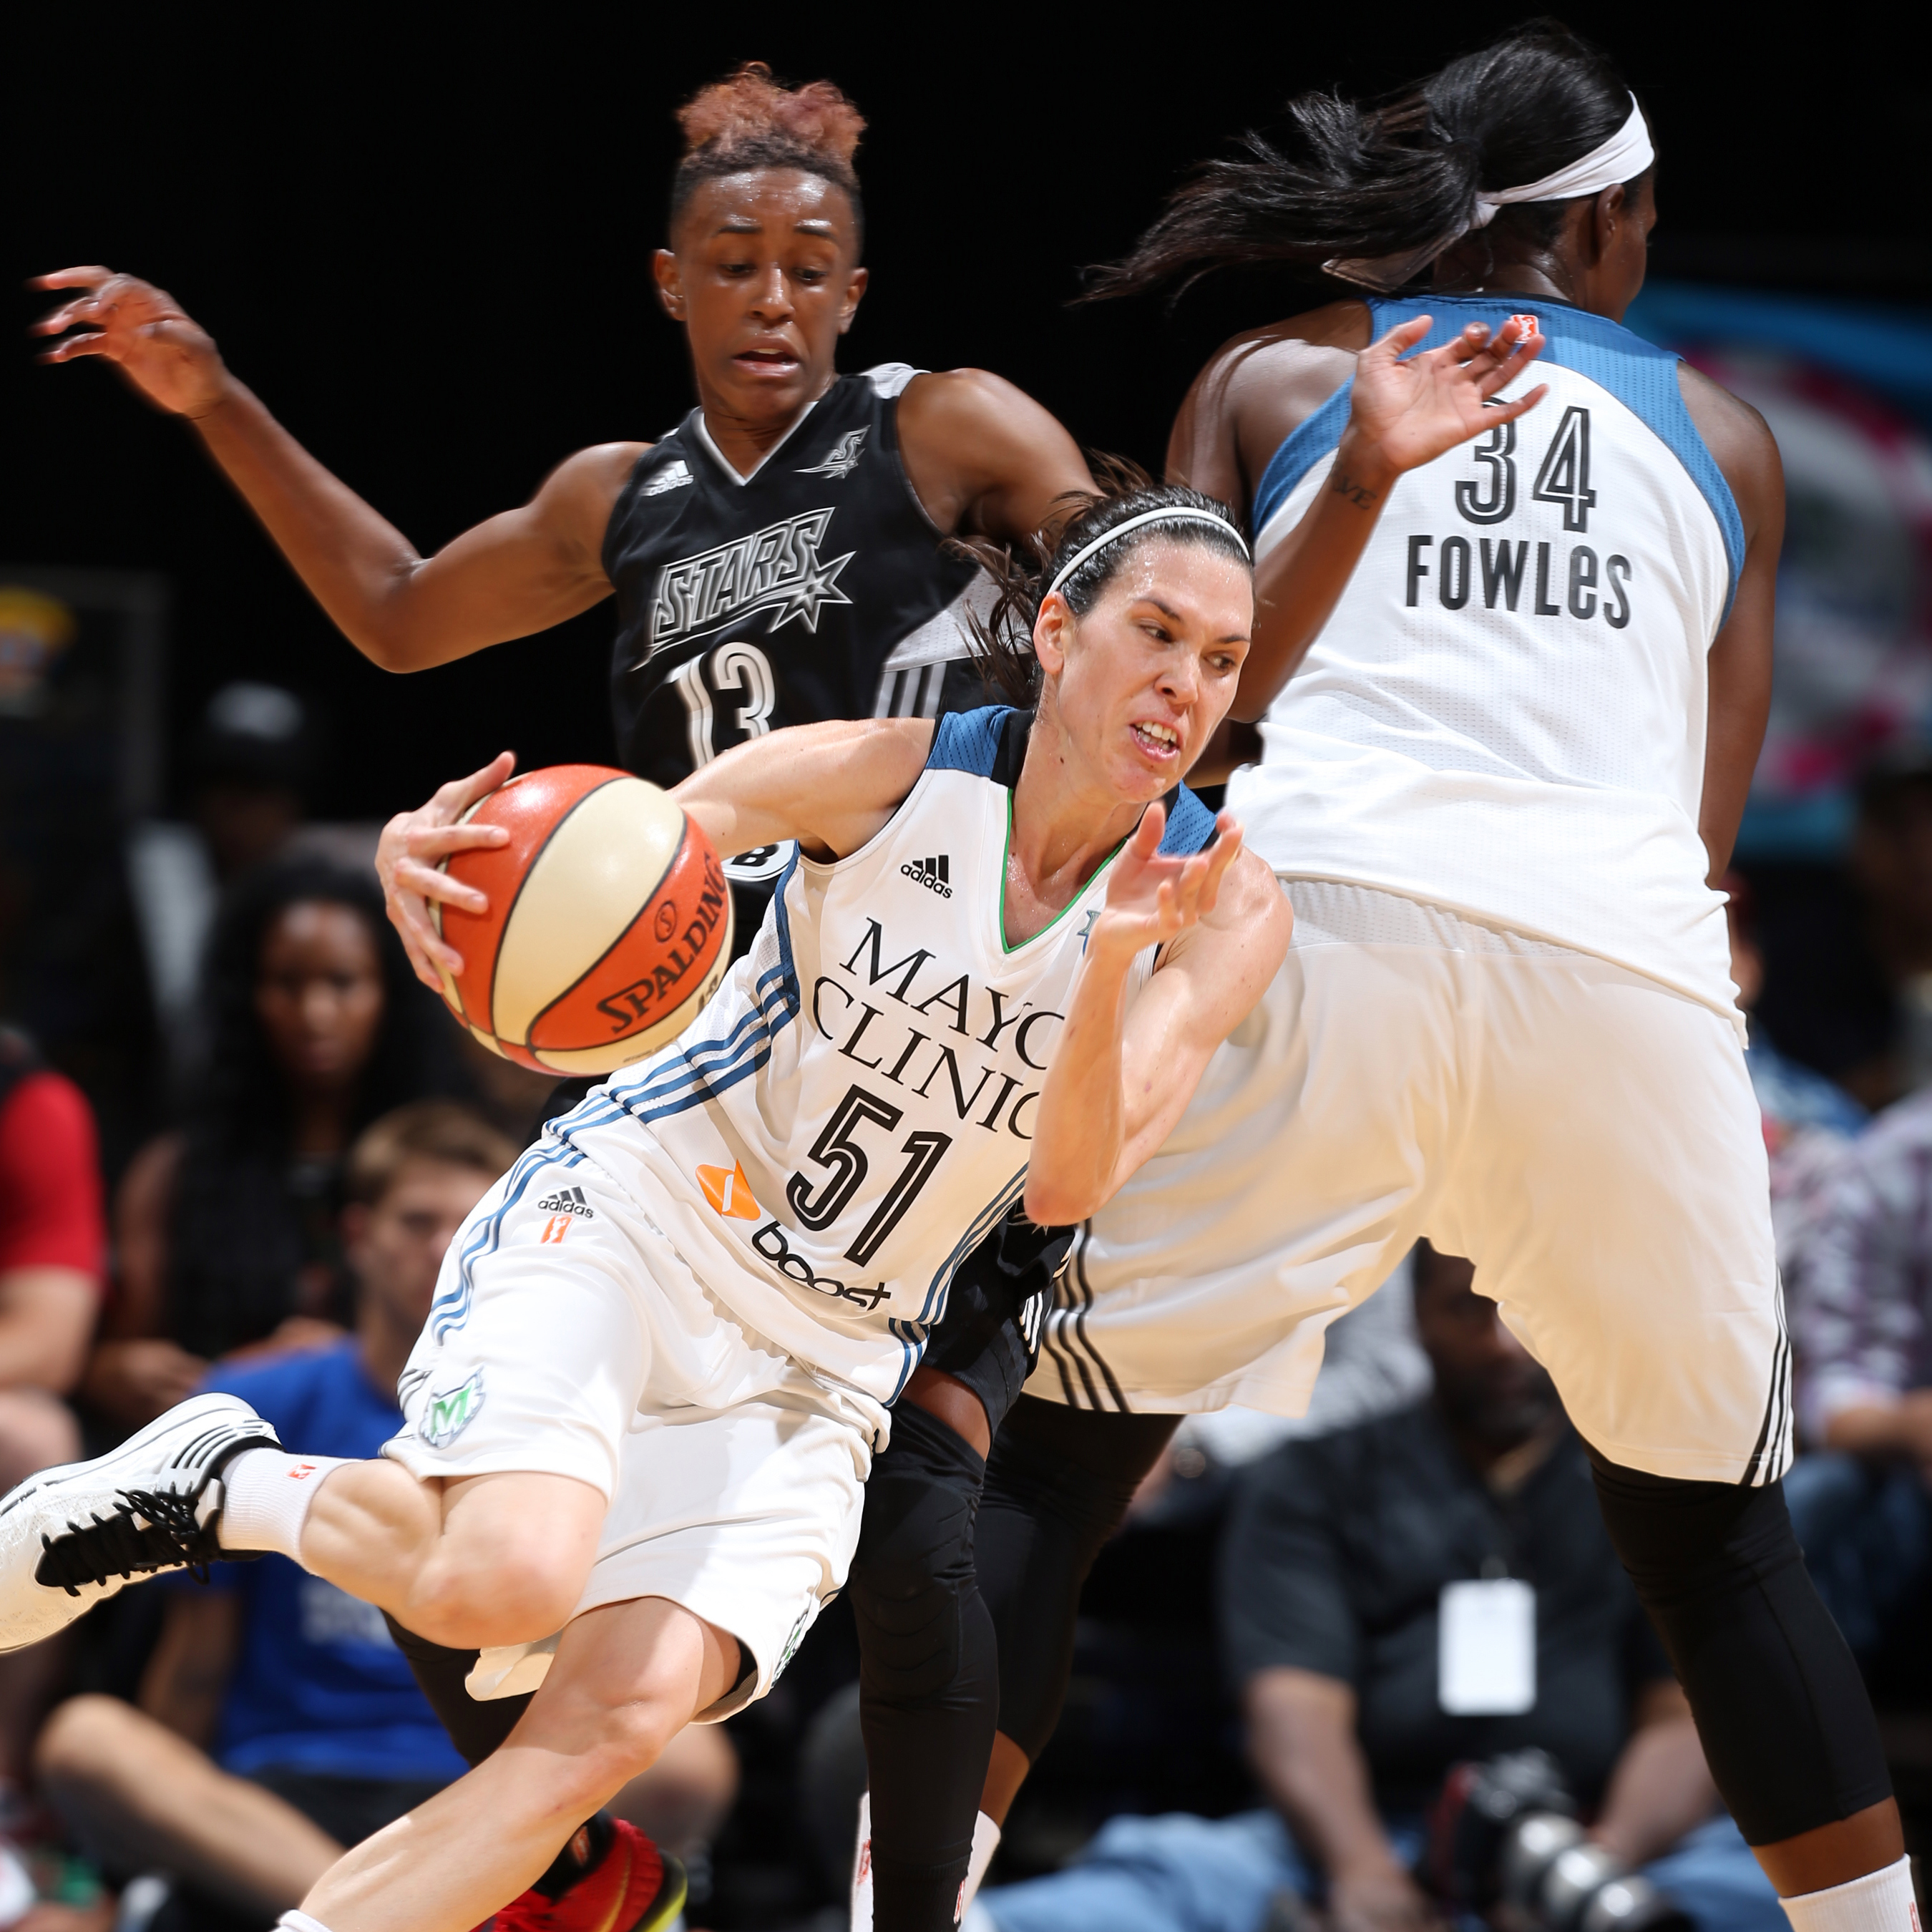 Lynx guard Anna Cruz was critical to Minnesota's win once again, providing great plays on both ends of the floor. Cruz finished with 11 points, six rebounds and two steals.